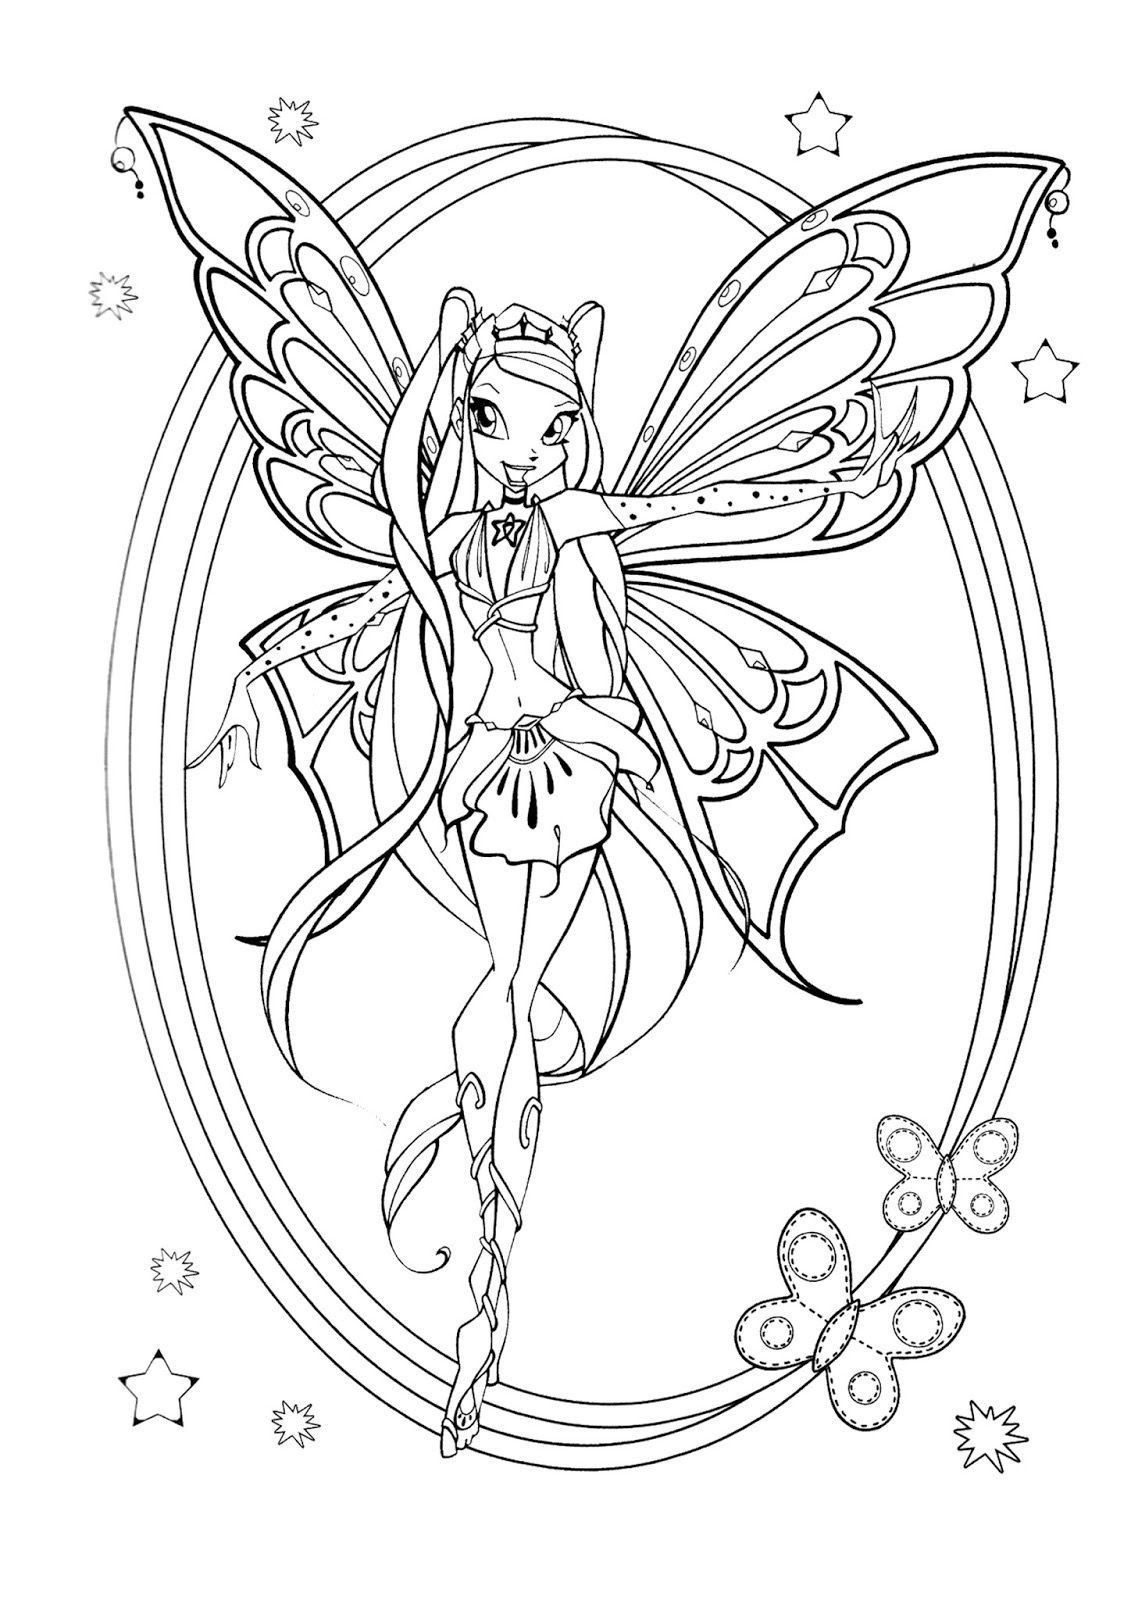 Winx Club Coloring Pages Best Of Awesome Musa Winx Coloring Pages Fansites Coloring Pages Fairy Coloring Pages Cartoon Coloring Pages